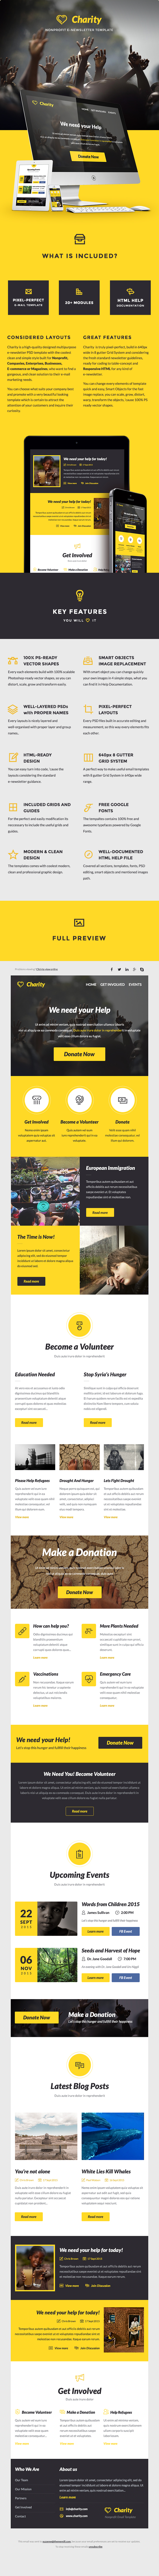 Charity - Nonprofit E-newsletter Template